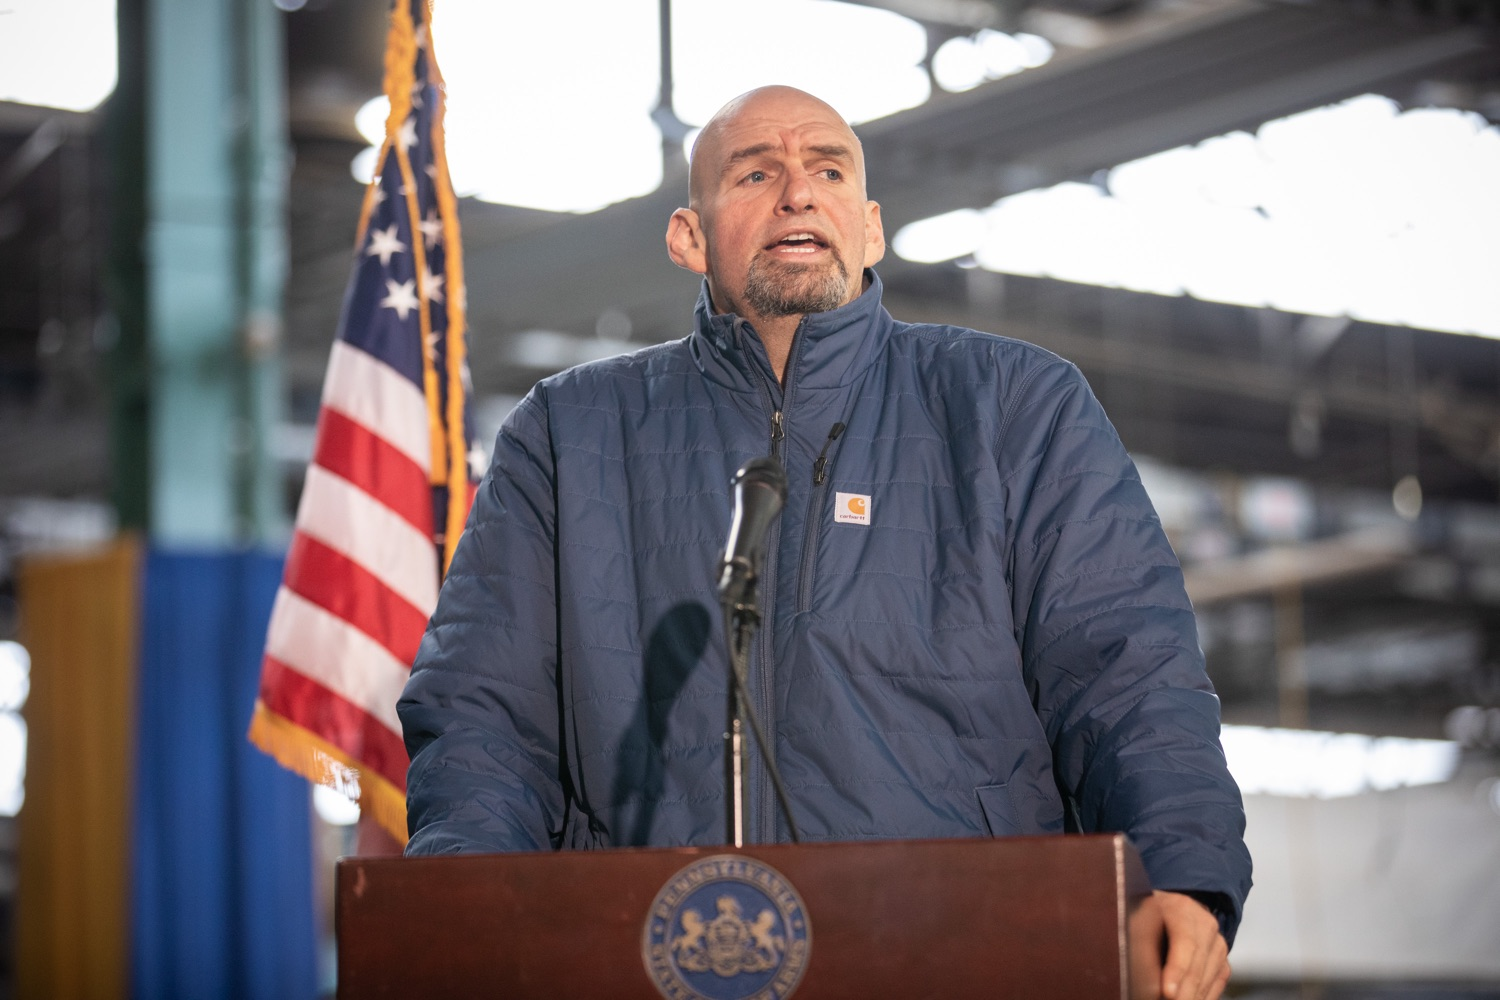 "<a href=""http://filesource.abacast.com/commonwealthofpa/photo/17646_agric_butter_sculpture_dz_011.jpg"" target=""_blank"">⇣ Download Photo<br></a>Lt. Governor John Fetterman speaking at the Pennsylvania Farm Show butter sculpture unveiling.Lt. Governor John Fetterman and Secretary of Agriculture Russell Redding today unveiled the 2020 Pennsylvania Farm Show butter sculpture, carved from a half-ton of butter depicting three of Pennsylvanias beloved professional sports mascots: Philadelphia Flyers Gritty, Philadelphia Eagles Swoop, and Pittsburgh Steelers Steely McBeam celebrating with a spread of Pennsylvania dairy products. The sculpture, a long-time Farm Show staple, encourages Pennsylvanians to be a fan of Pennsylvania dairy and give a cheer to the more than 6,200 dairy farmers in the commonwealth.  Harrisburg, PA  January 2, 2020"